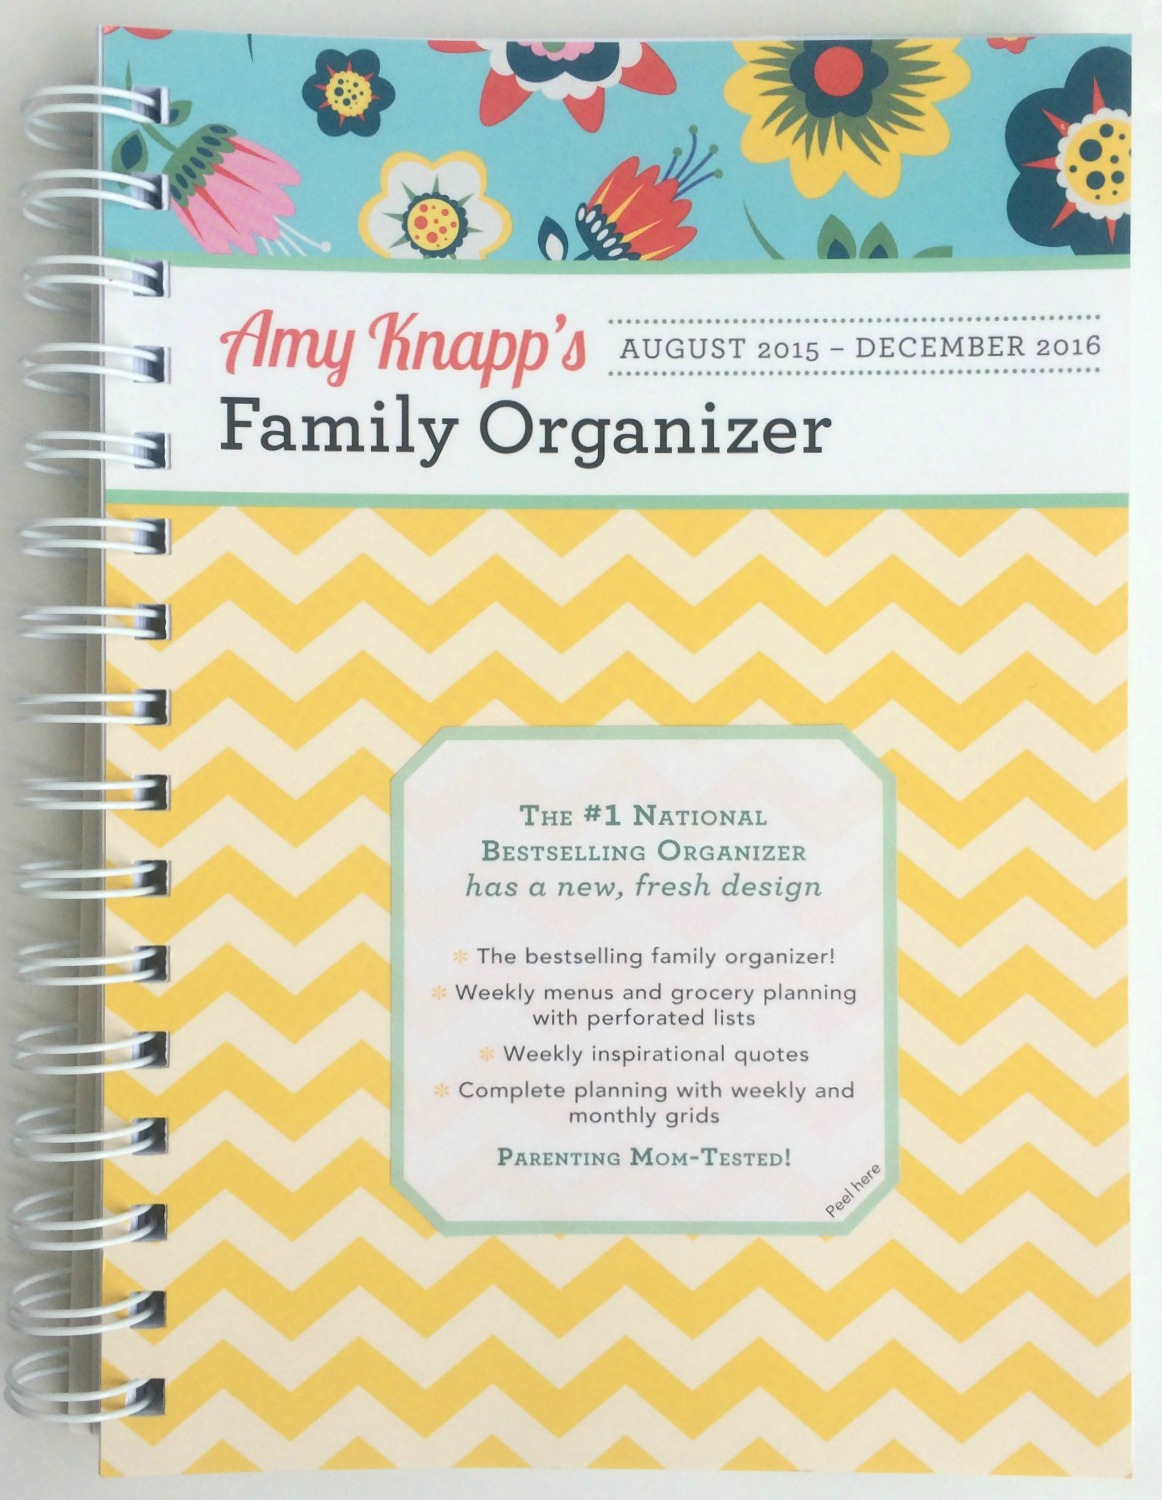 How to pick the planner that's right for you - this one is Amy Knapp's Family Organizer - 2016 Planner Reviews